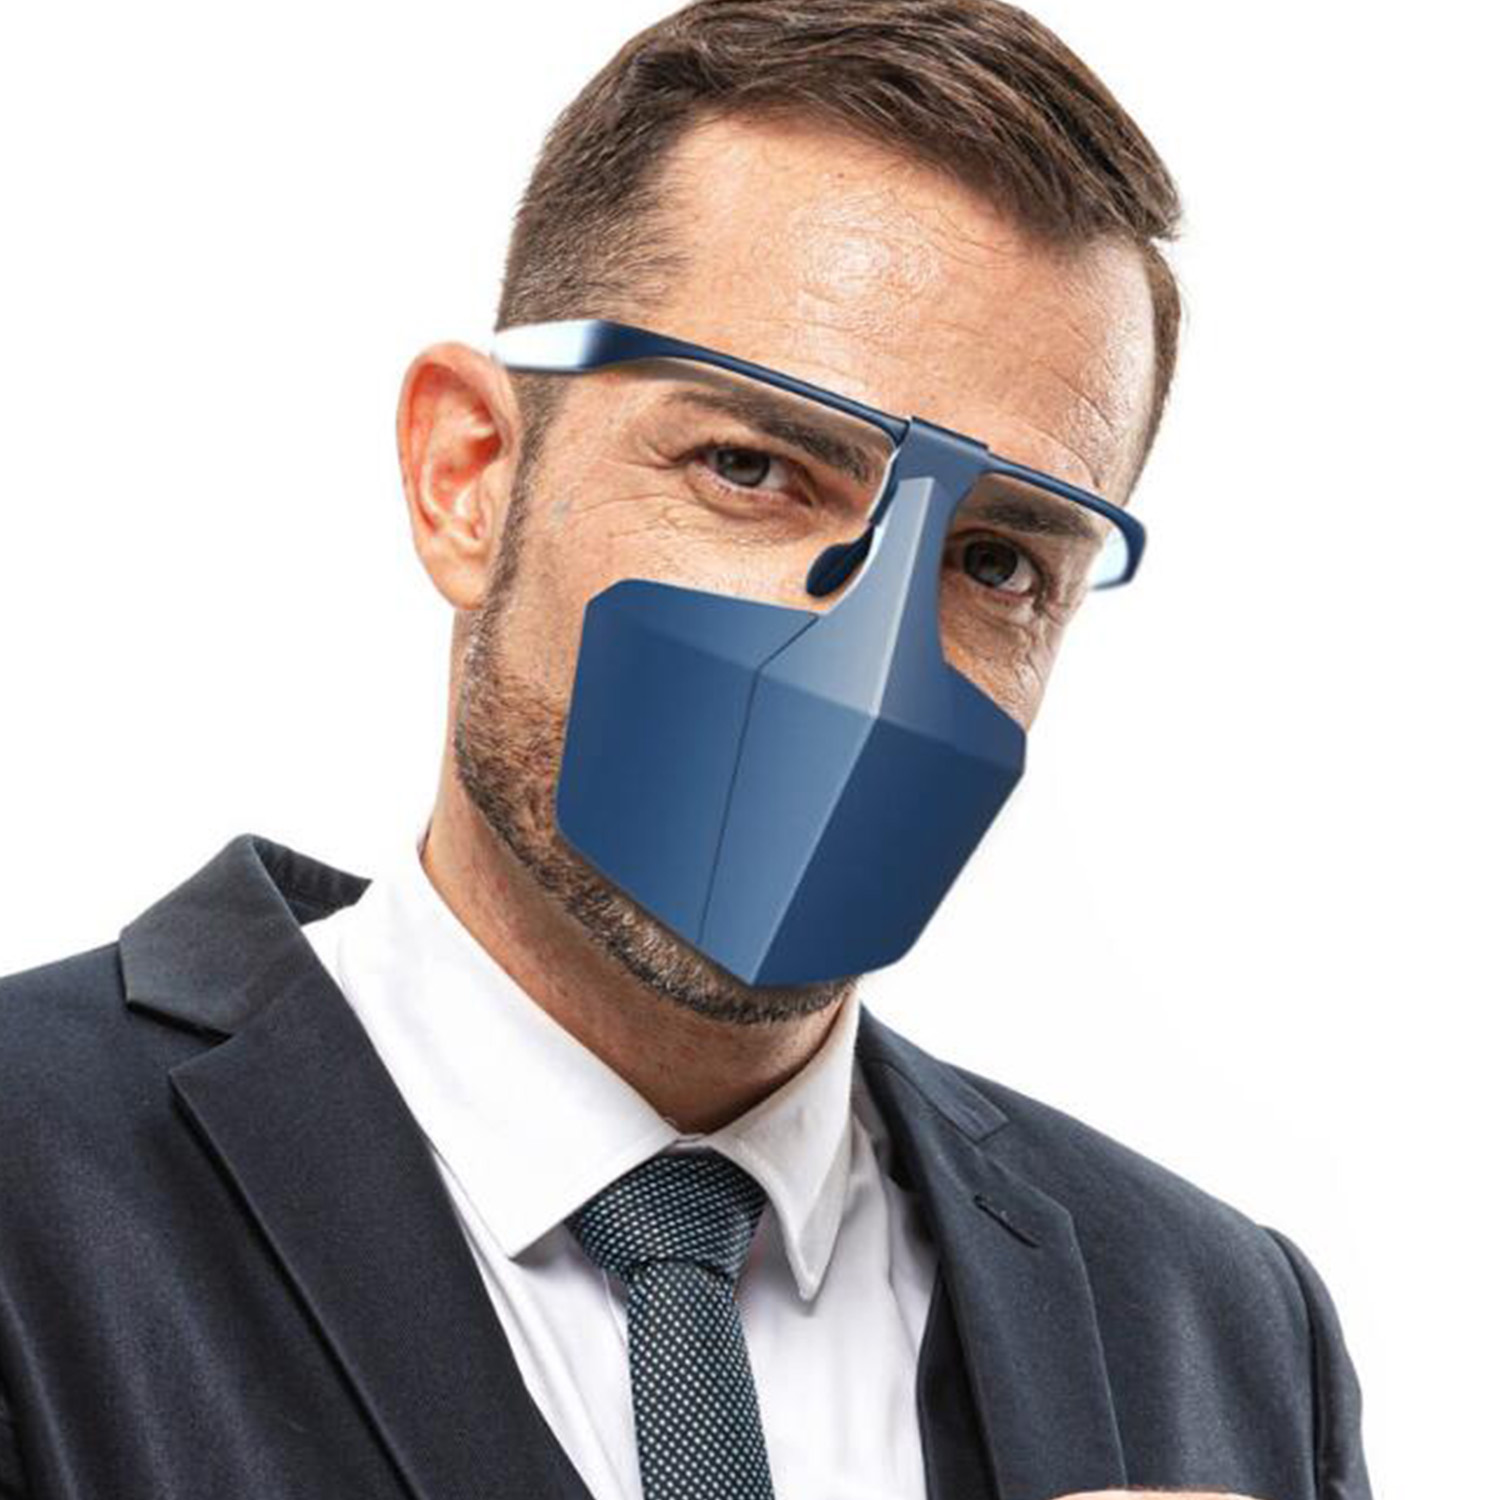 Plastic Protective Face Mask Against Droplets Anti-fog Isolation Face Mask Breathable Reusable Face Protective Cover Masks